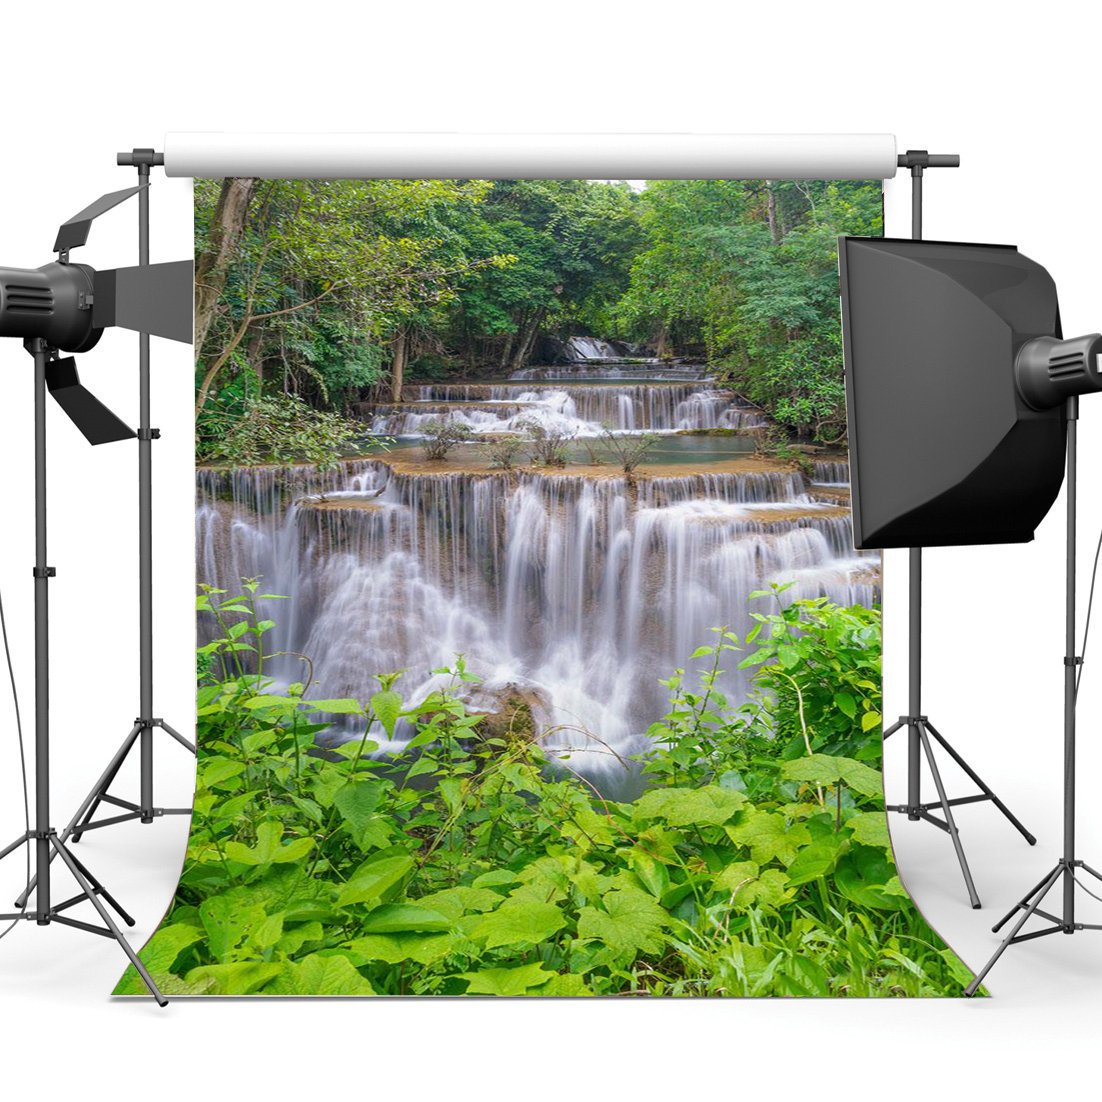 Jungle Forest Backdrop Nature Spring Trees Green Plants Leaves Waterfall Outdoor Journey Cascade Photography Background-in Photo Studio Accessories from Consumer Electronics